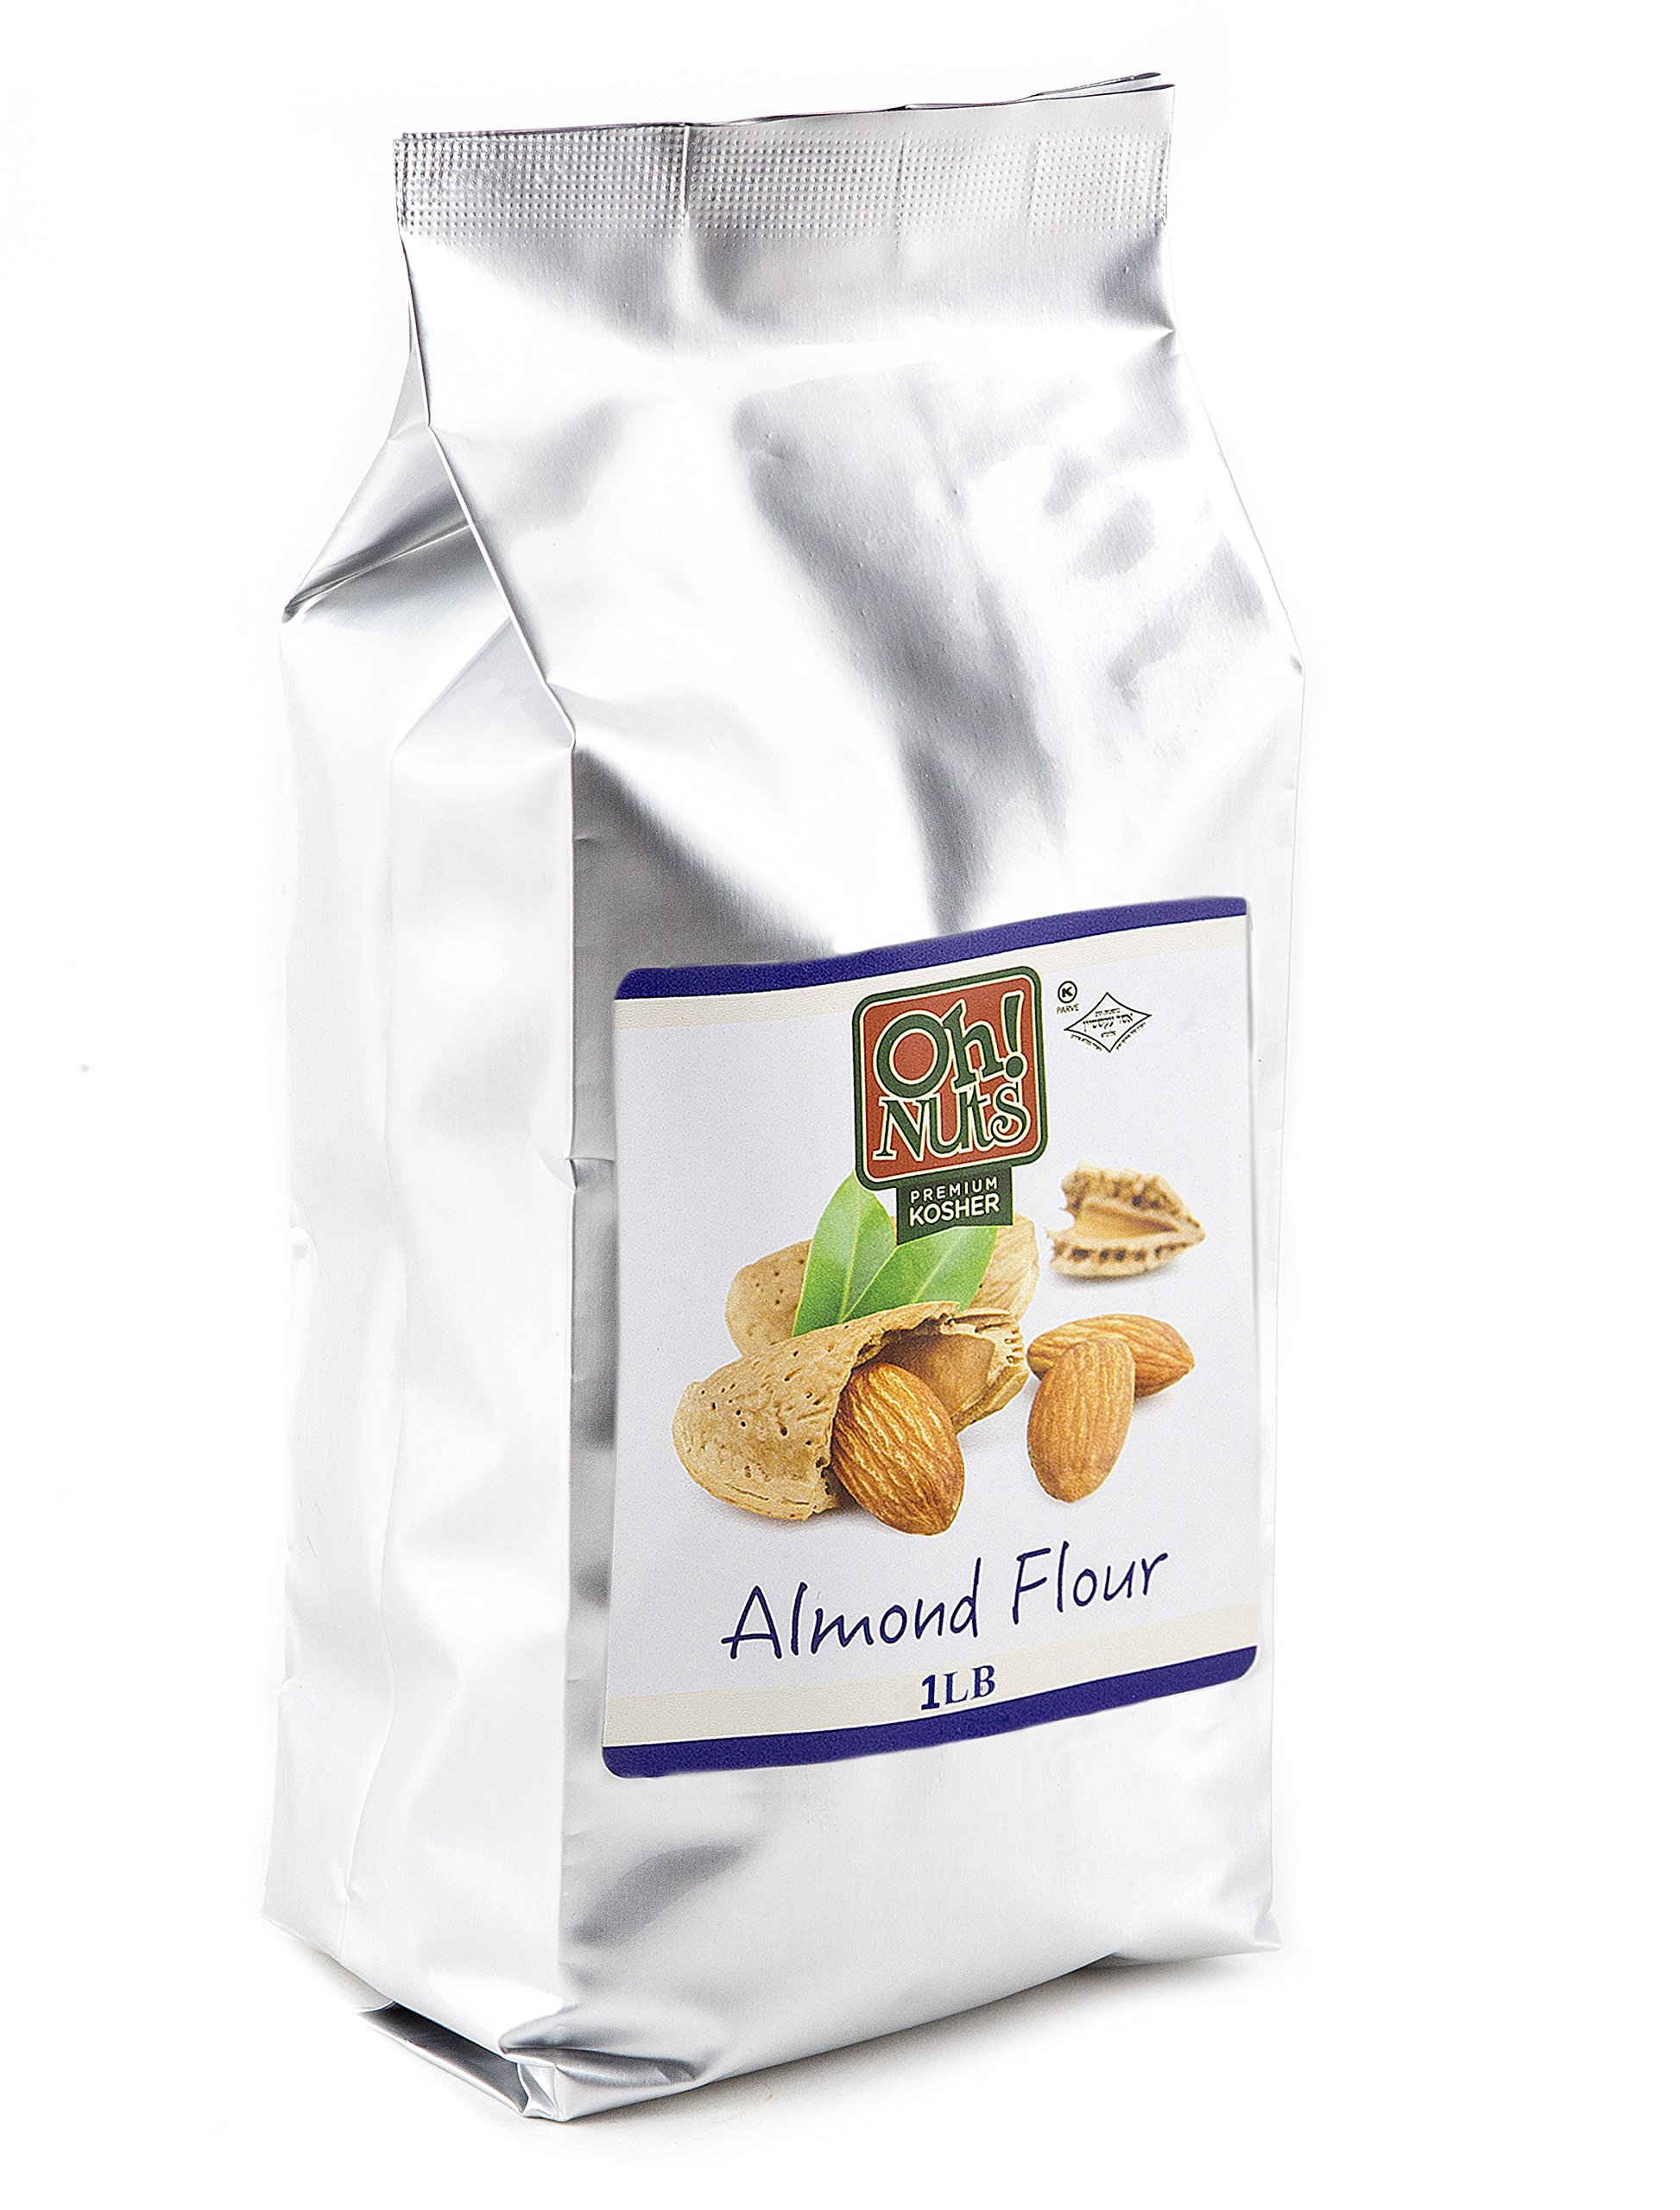 Almond Flour All Natural, Extra Fine Ground Almond Meal - Oh! Nuts (1 LB Bag All Natural Almond Flour)